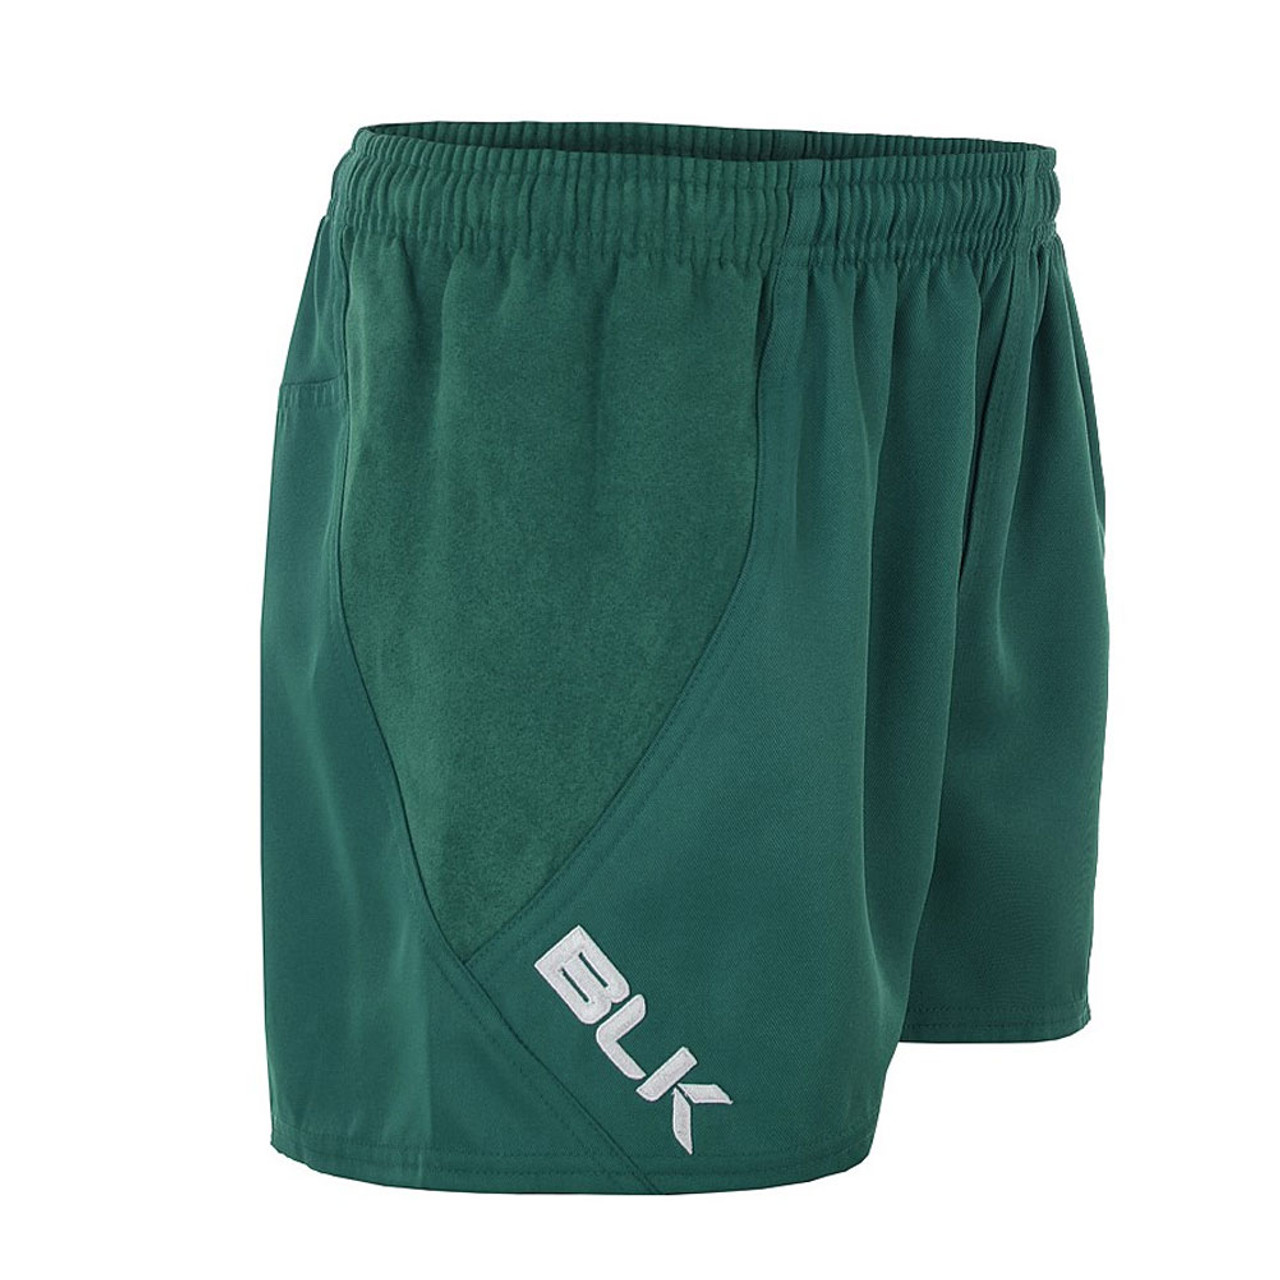 BLK Titanium II playing rugby shorts [Bottle green]